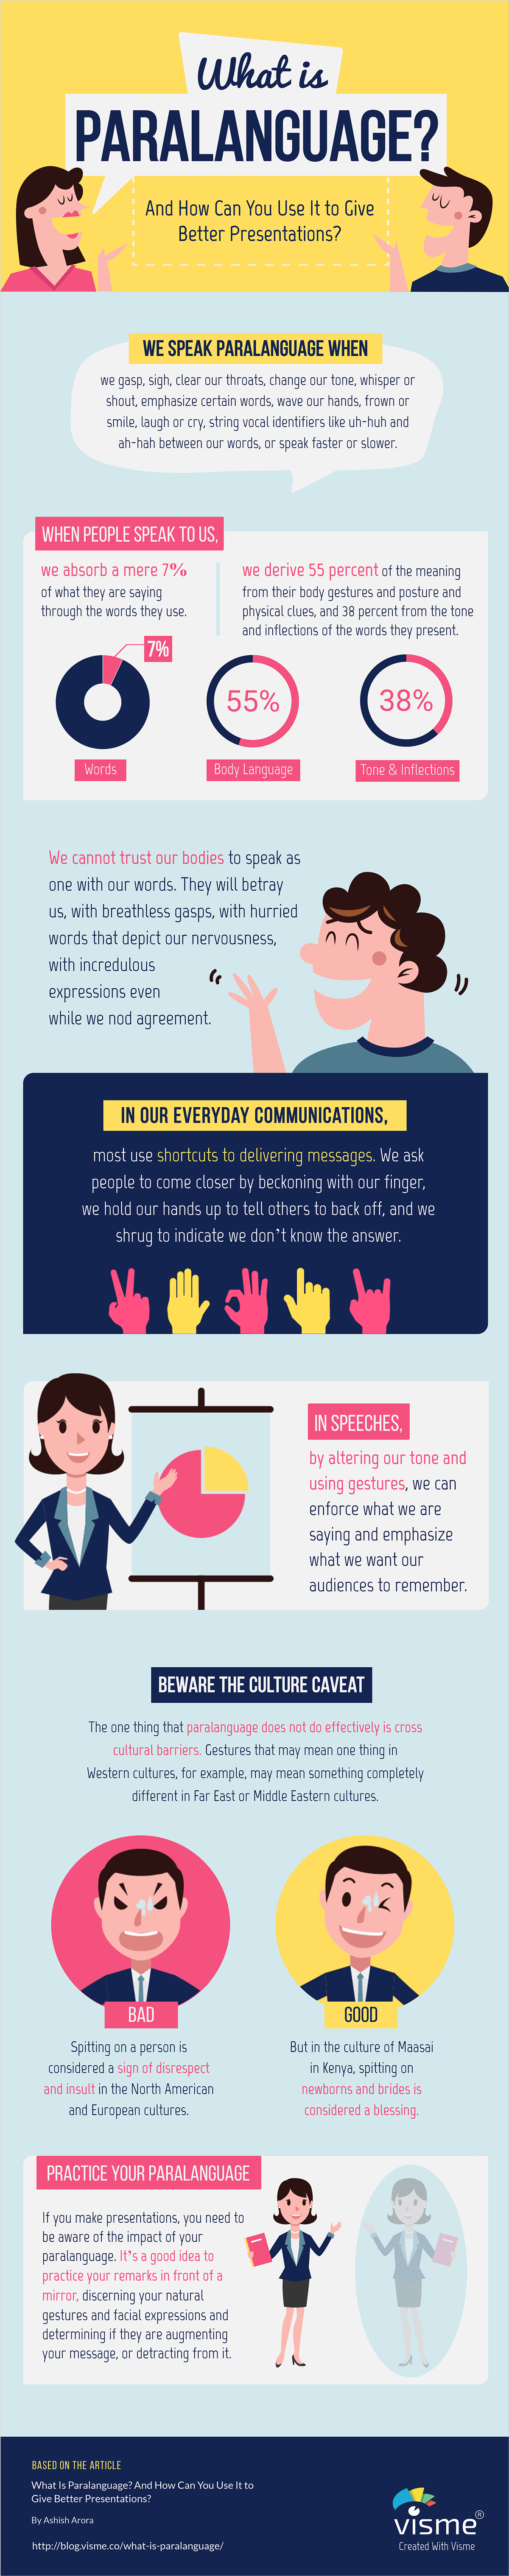 What-Is-Paralanguage-And-How-Can-You-Use-It-to-Give-Better-Presentations-infographic